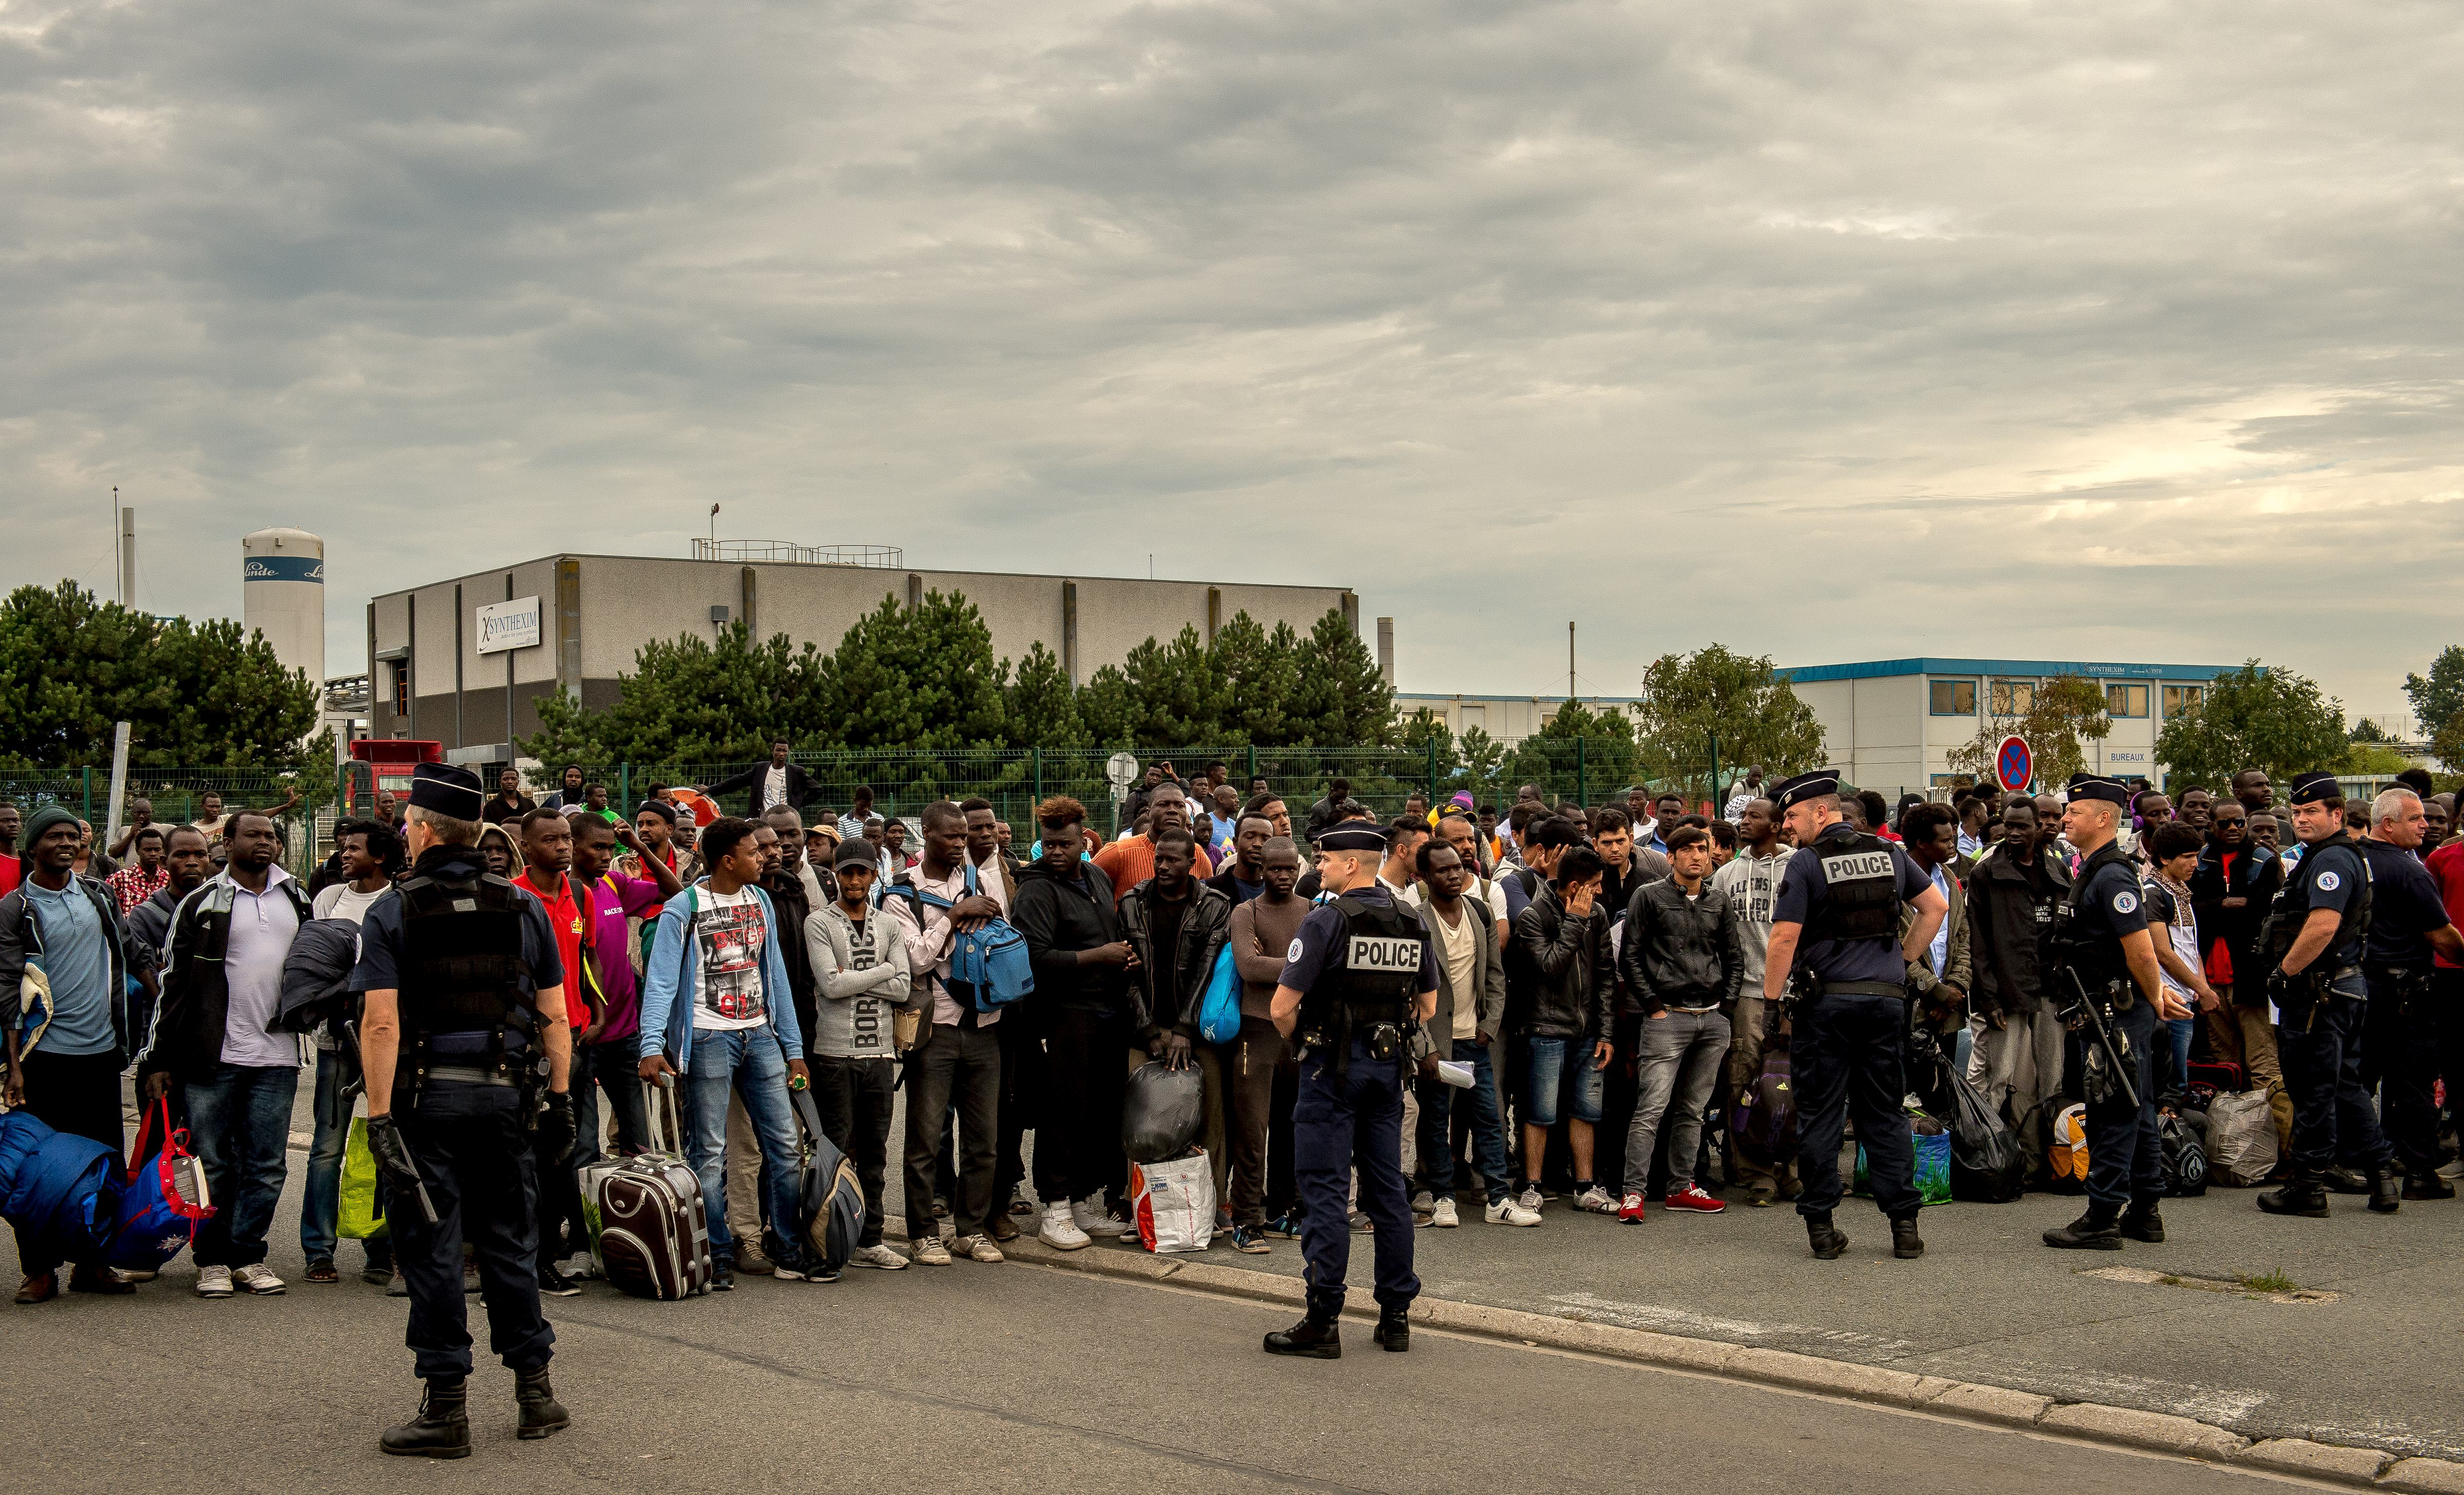 Migrants from the 'Jungle' migrant camp who have been denied access to a bus heading to a  Welcome and orientation centre  (CAO) are gathered under police surveillance, in Calais on Sept. 13, 2016.